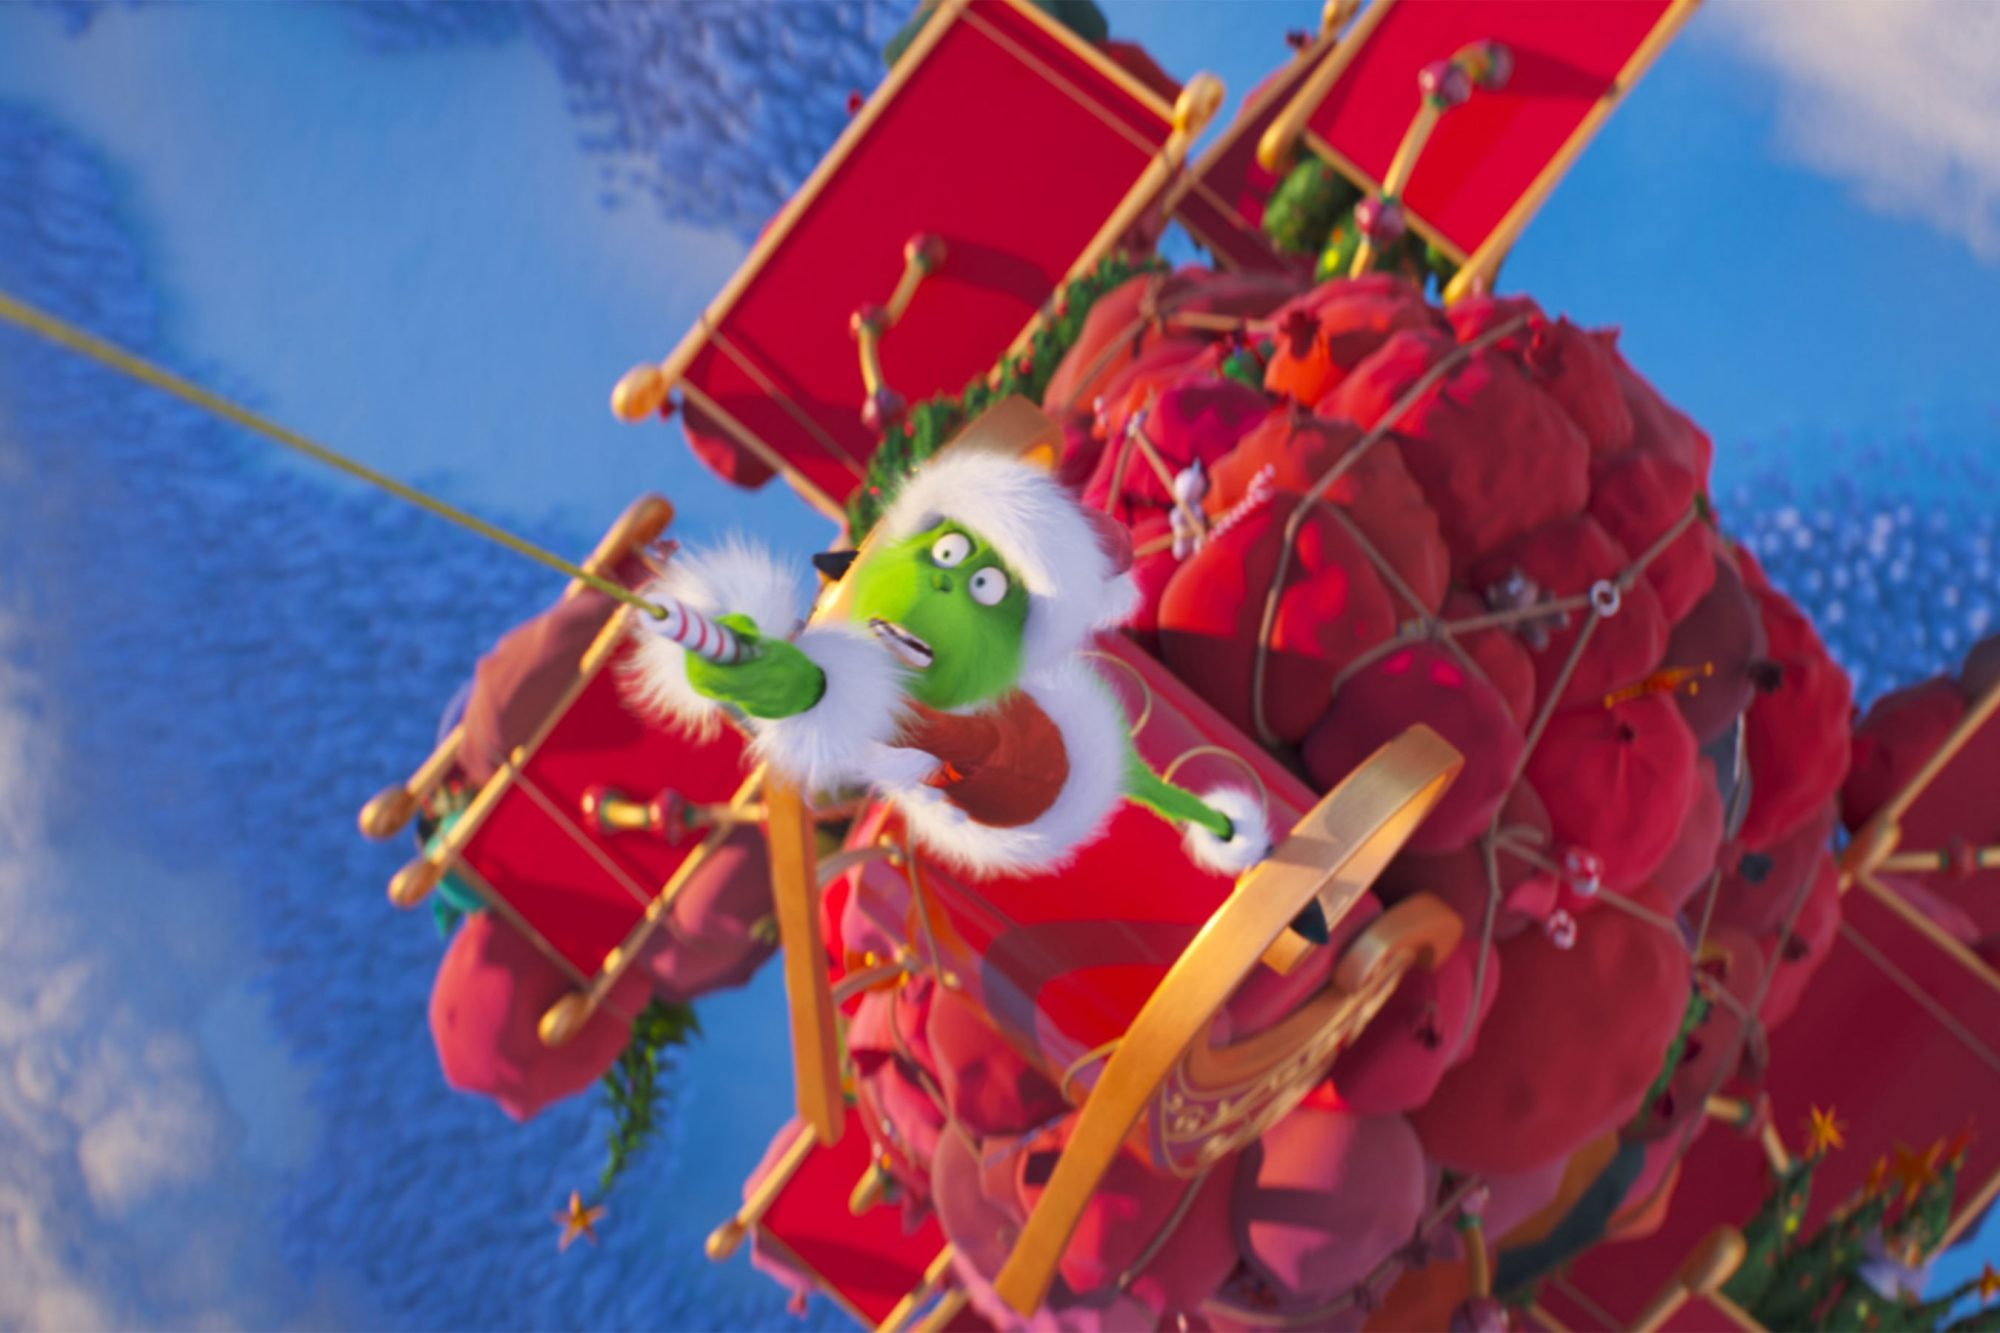 The Grinch Review Benedict Cumberbatch Brings Fresh Revamp To The Green Christmas Meanie Ew Com